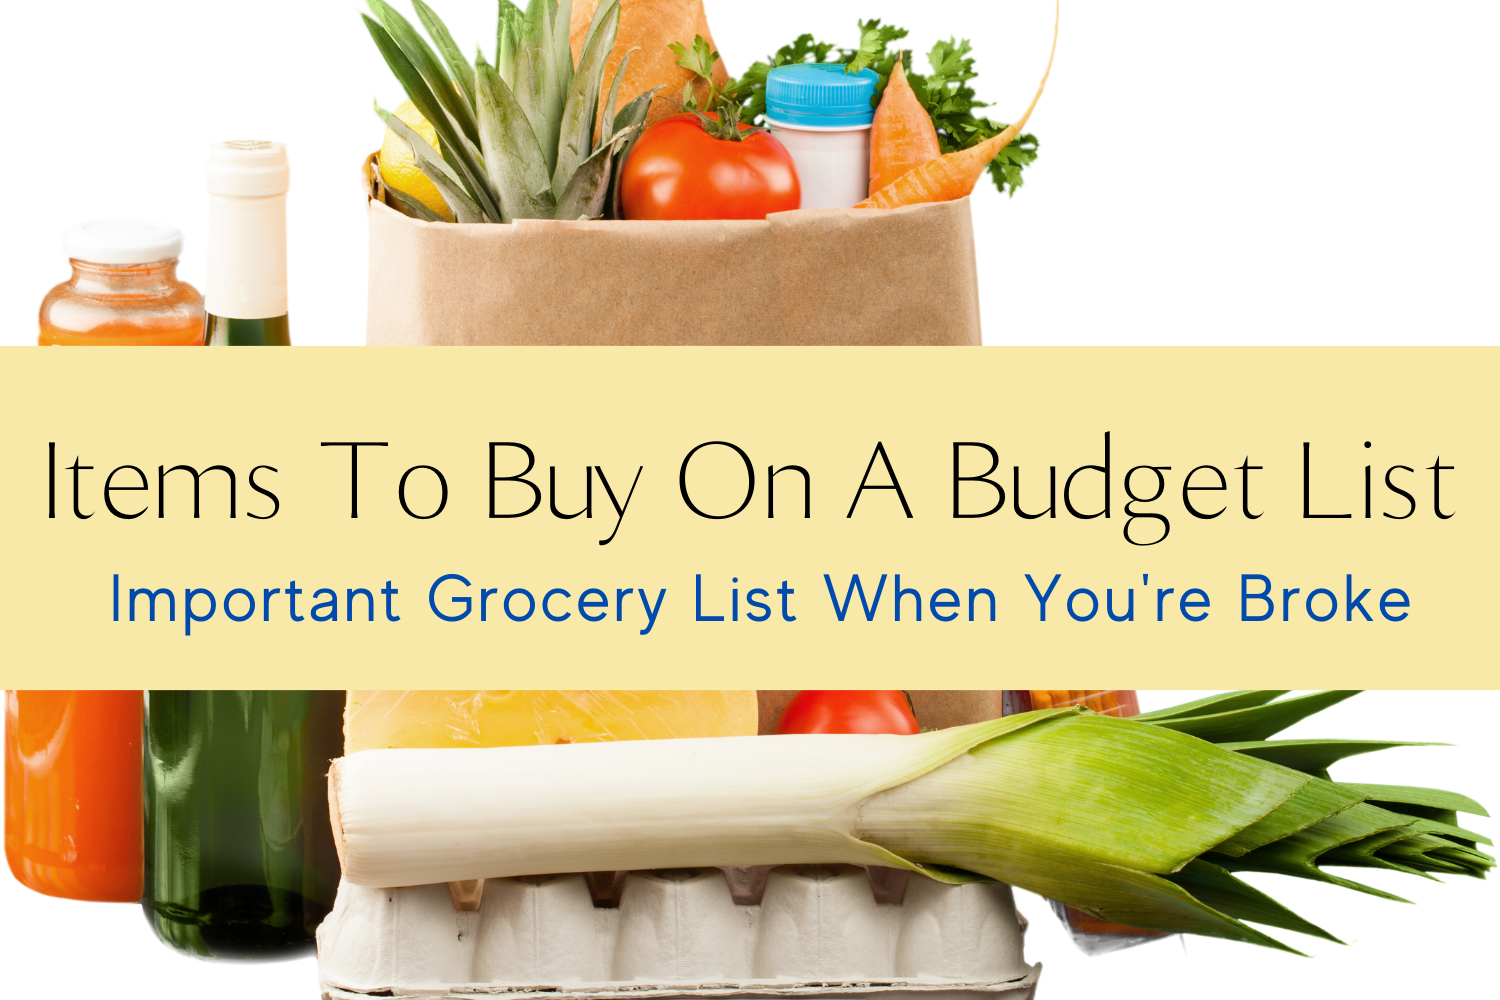 items-to-buy-on-a-budget-list